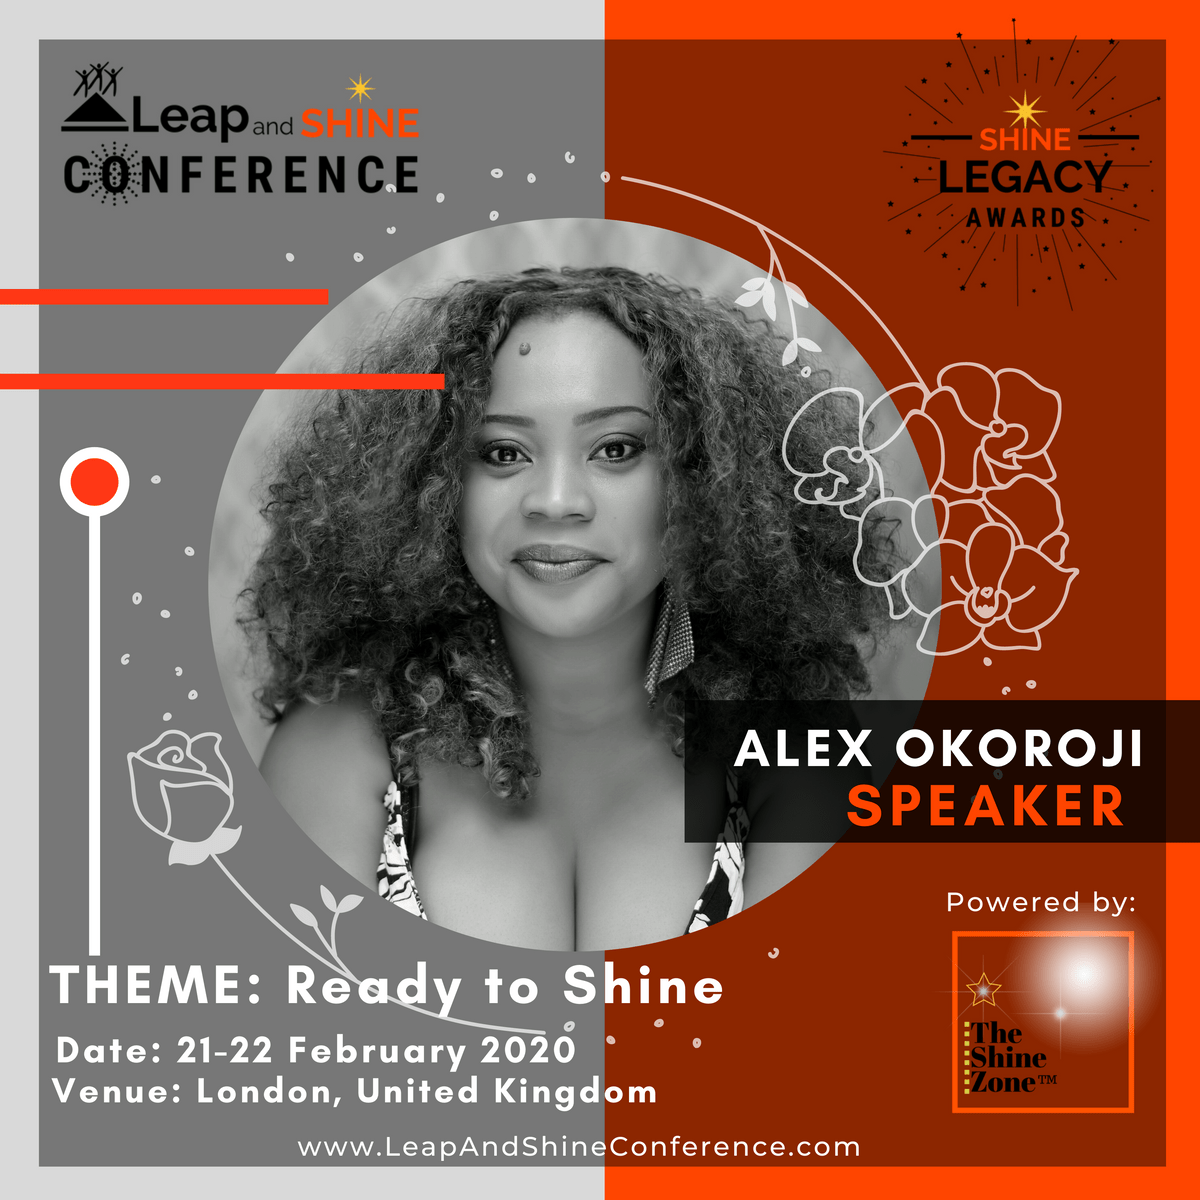 Alex Okoroji is speaking at the Leap and Shine Conference in London